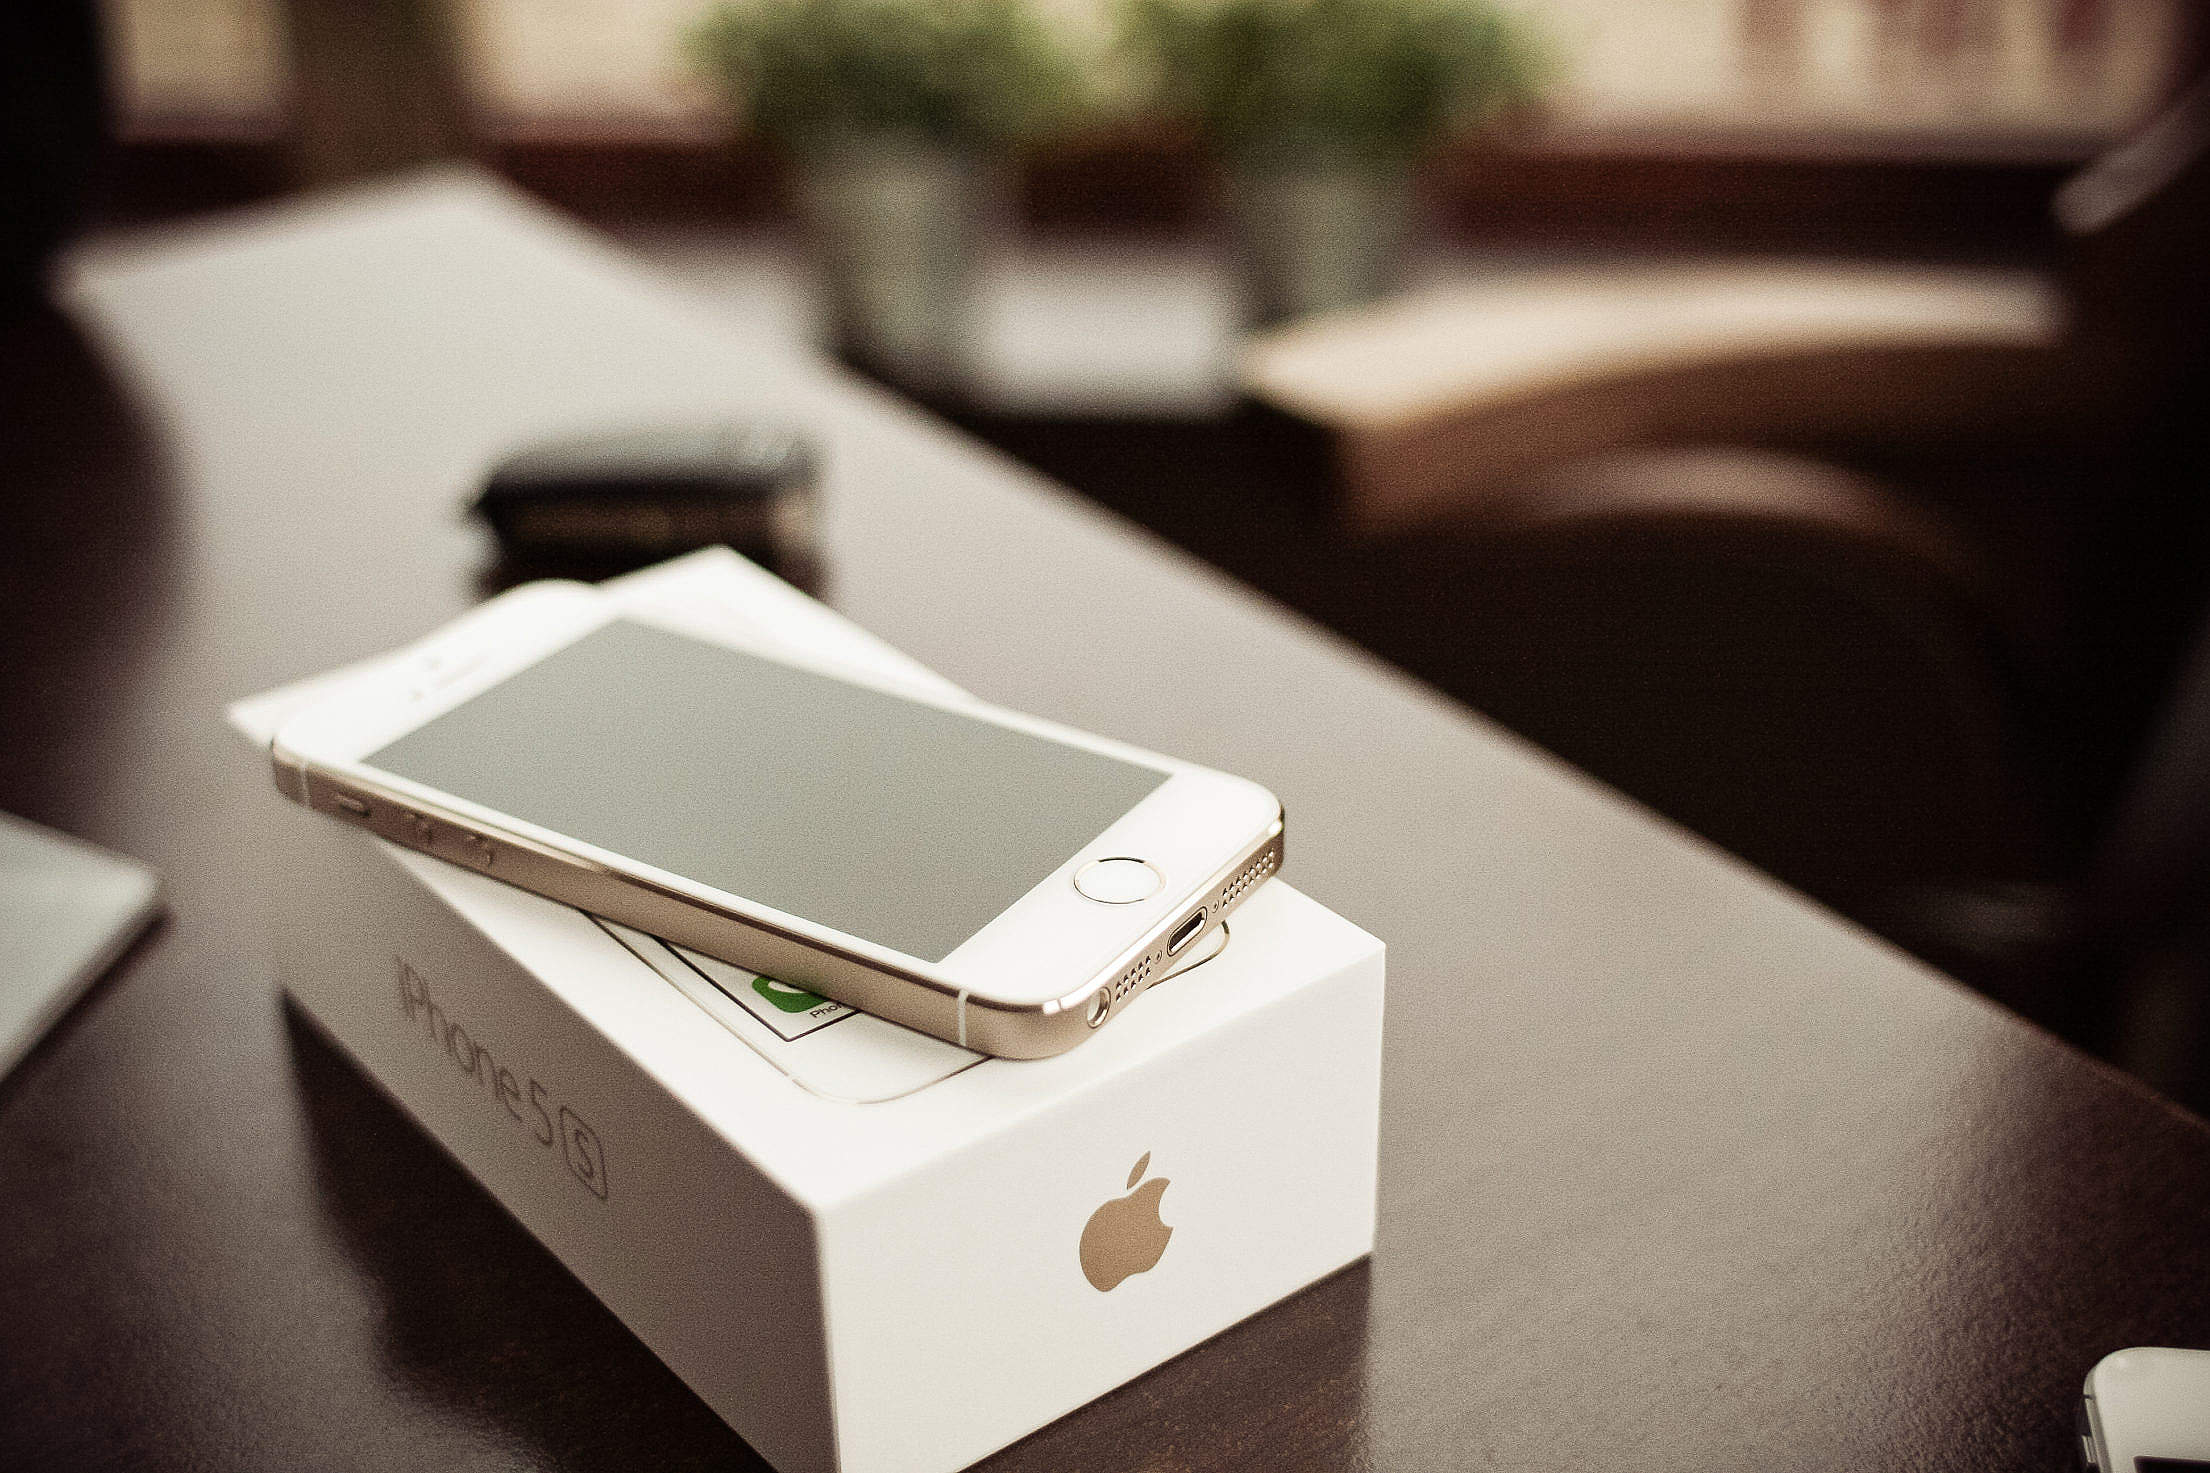 iPhone 5S Gold with a box Free Stock Photo